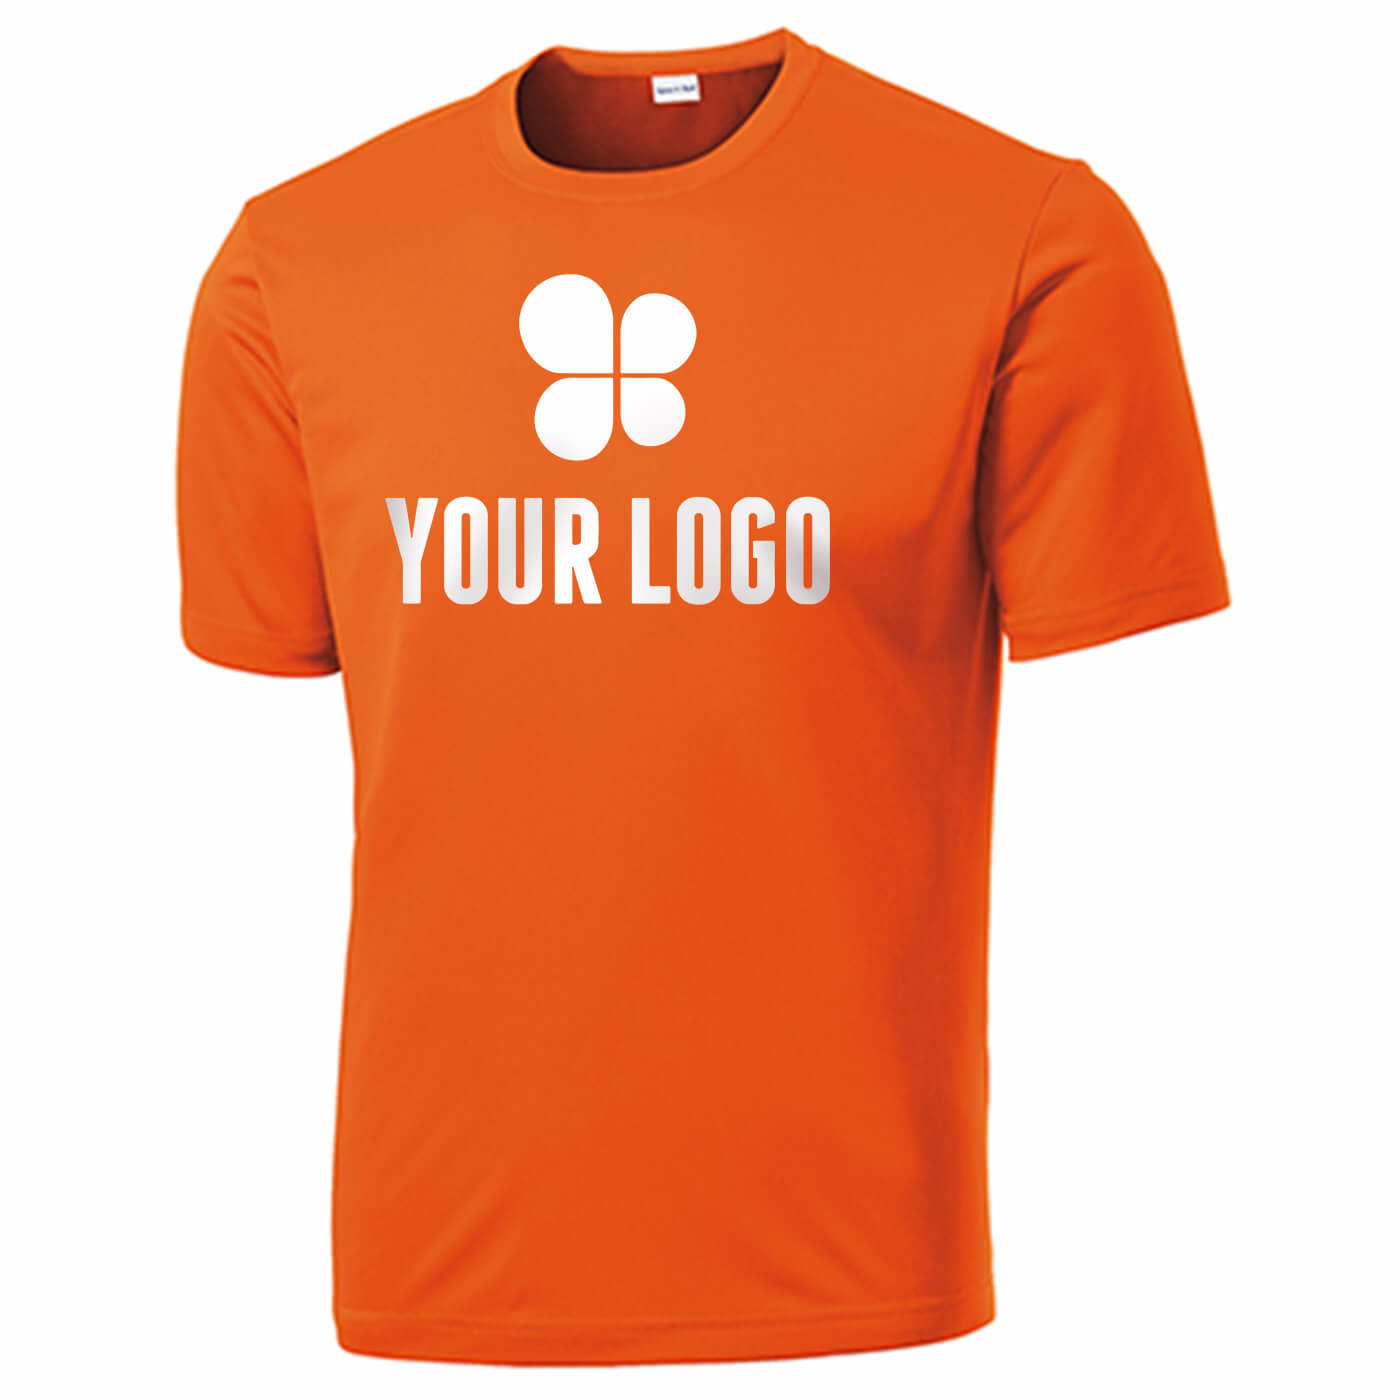 Custom Printed T Shirts Popular Shirt Brands Available Uprinting